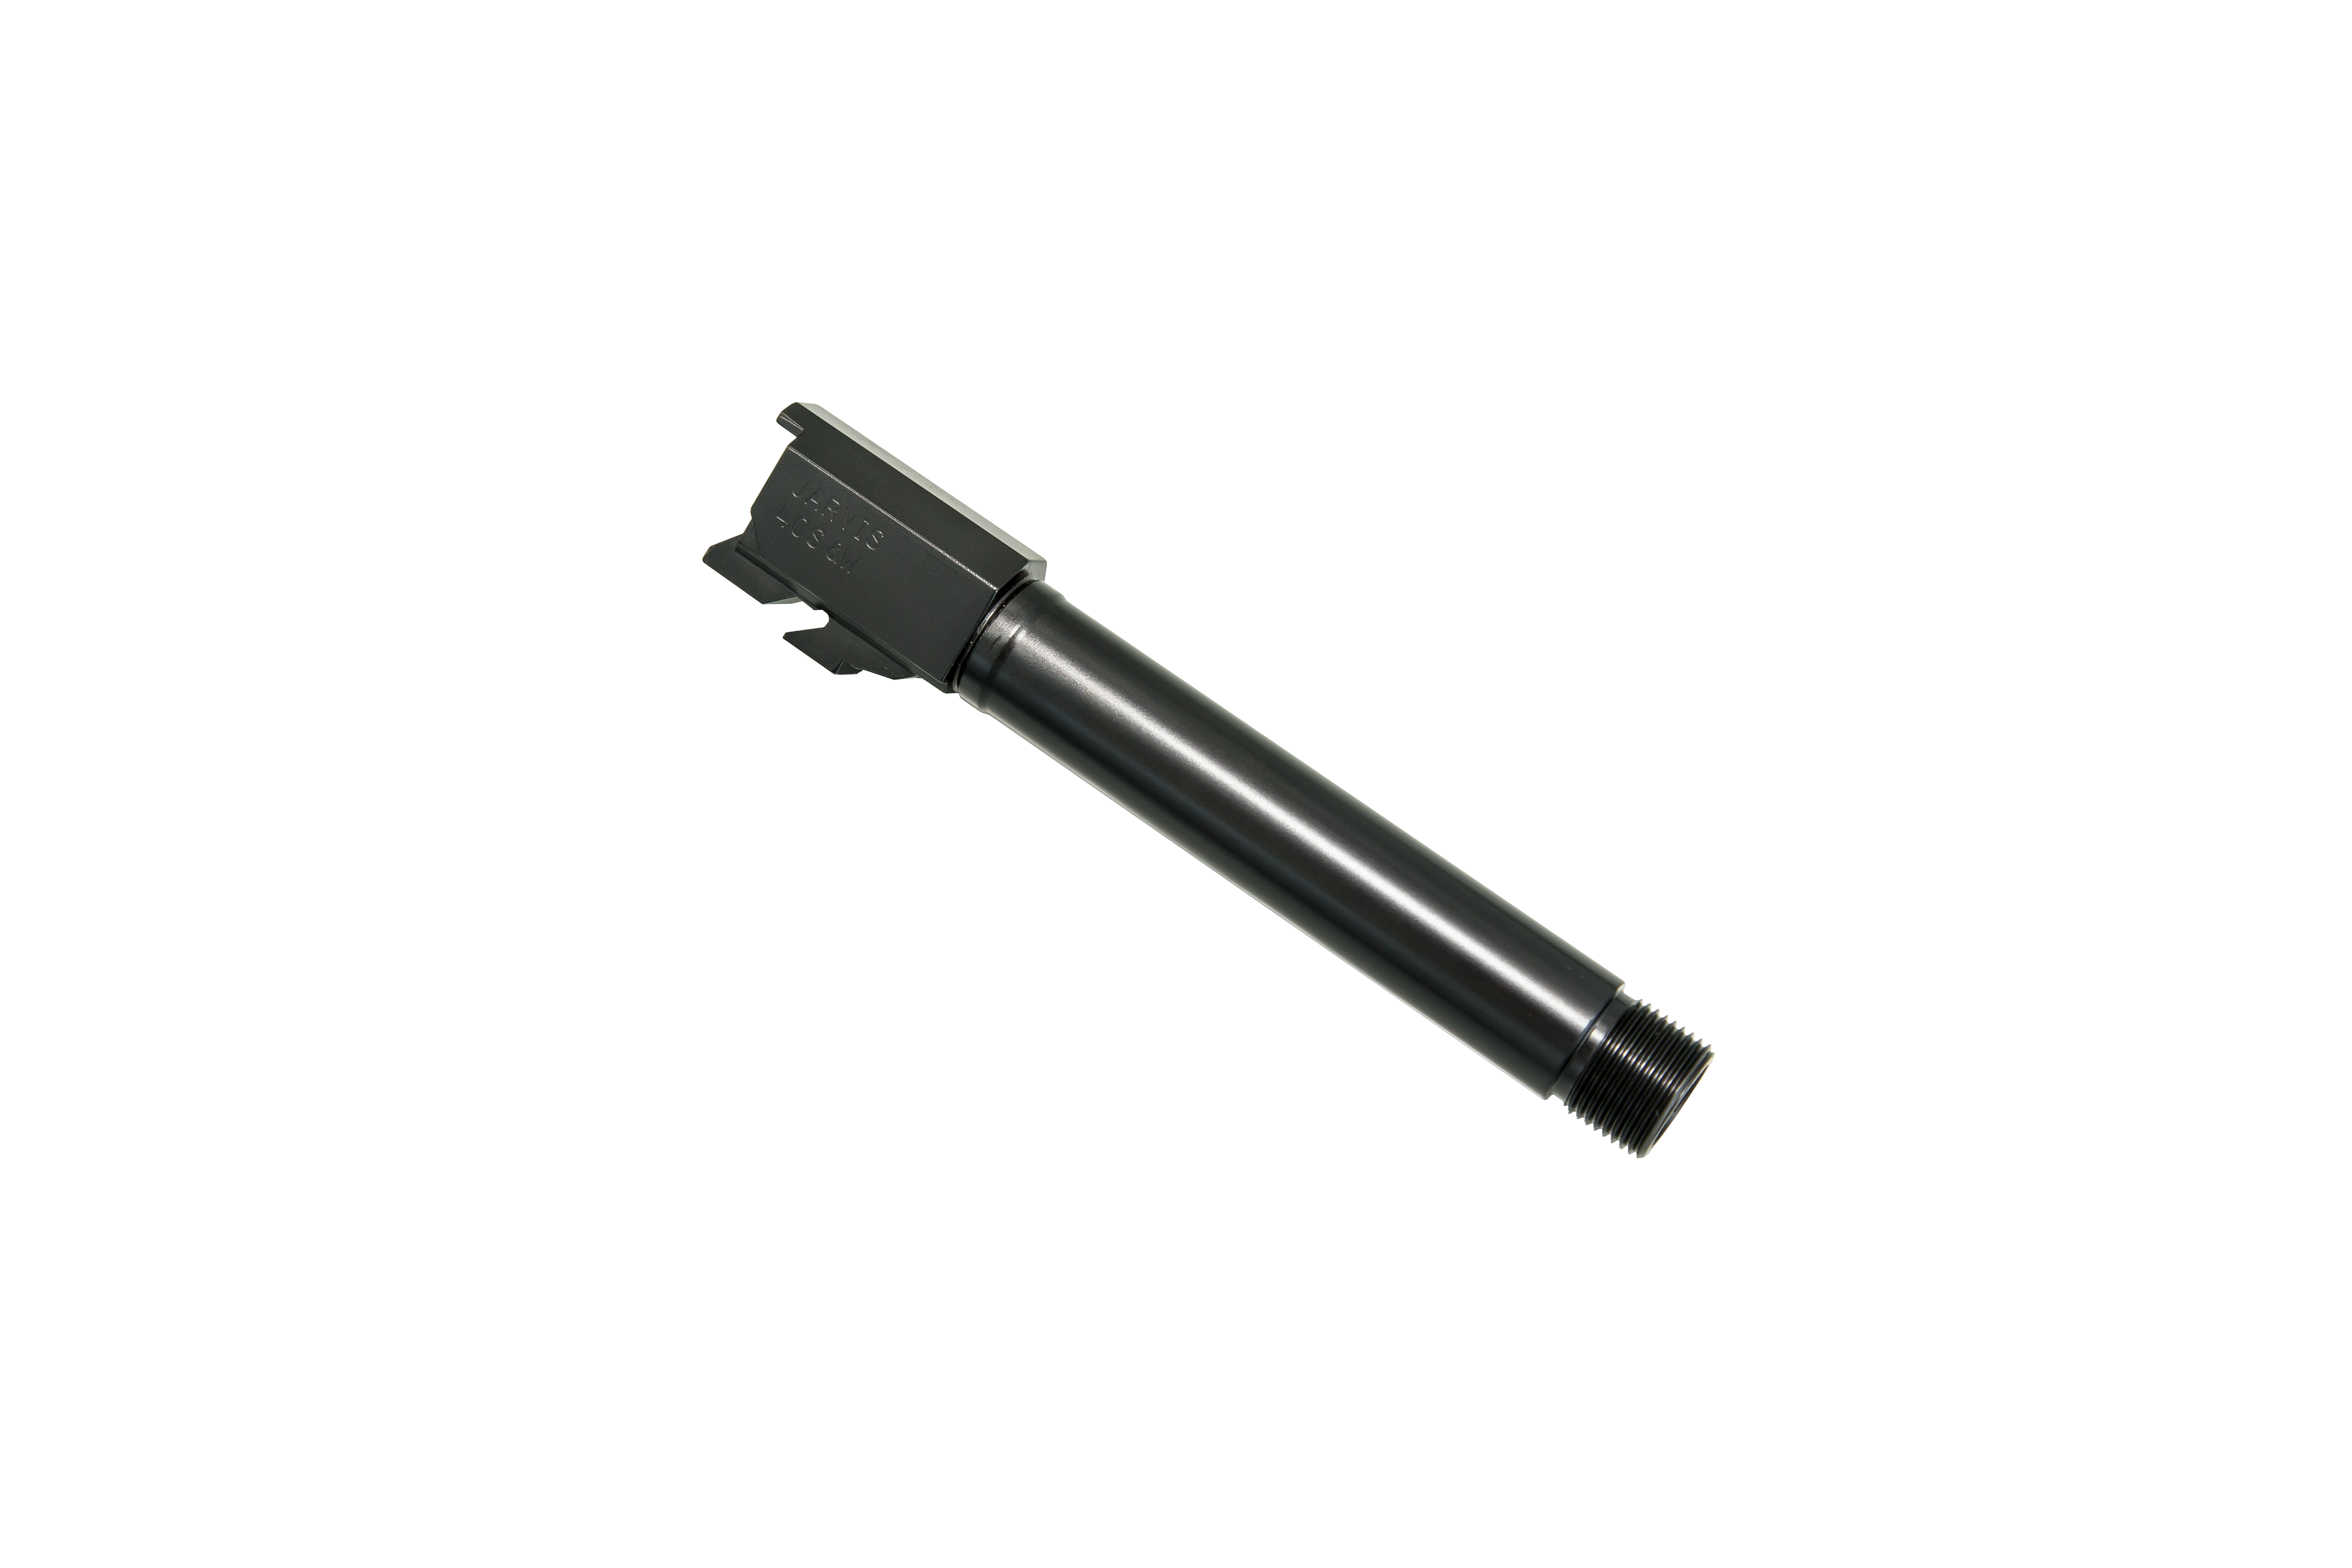 P99 40 Threaded Barrel